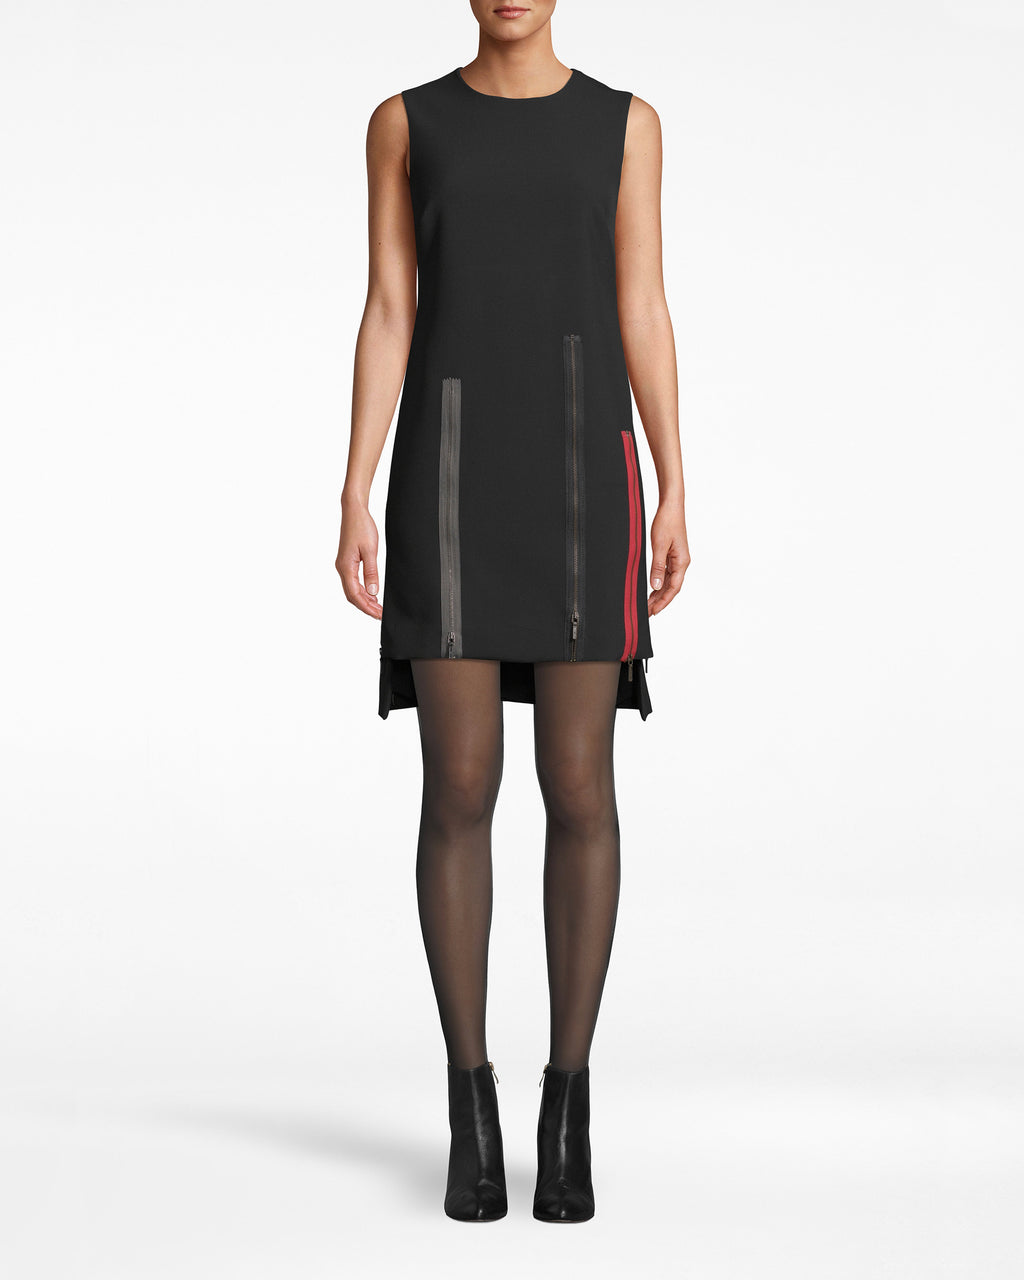 BO10174 - EXPOSED ZIPPERS SHIFT DRESS - dresses - short - Who says shift dresses have to be simple? We added exposed, multi-colored zippers to this sleeveless style. They cascade down and stop at the asymmetrical hem. Lined, exposed back zipper for closure.